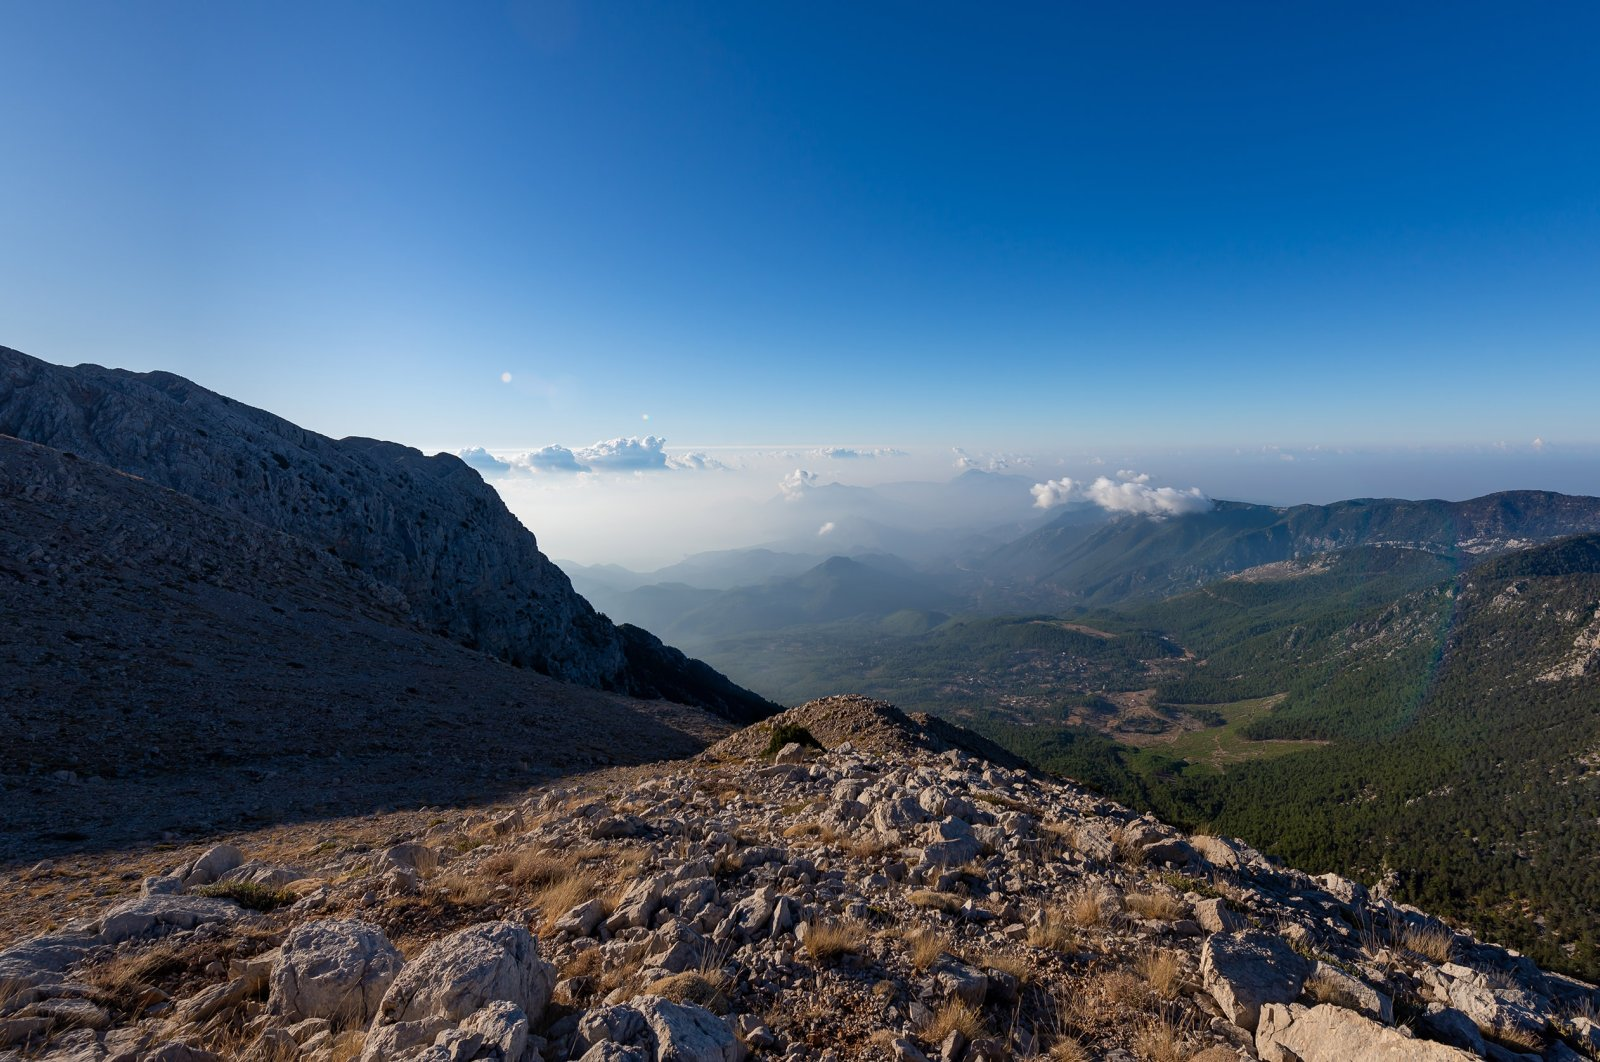 It's possible to go trekking along the Lycian Way 11 months of the year, thanks to the mild climate. (Shutterstock Photo)